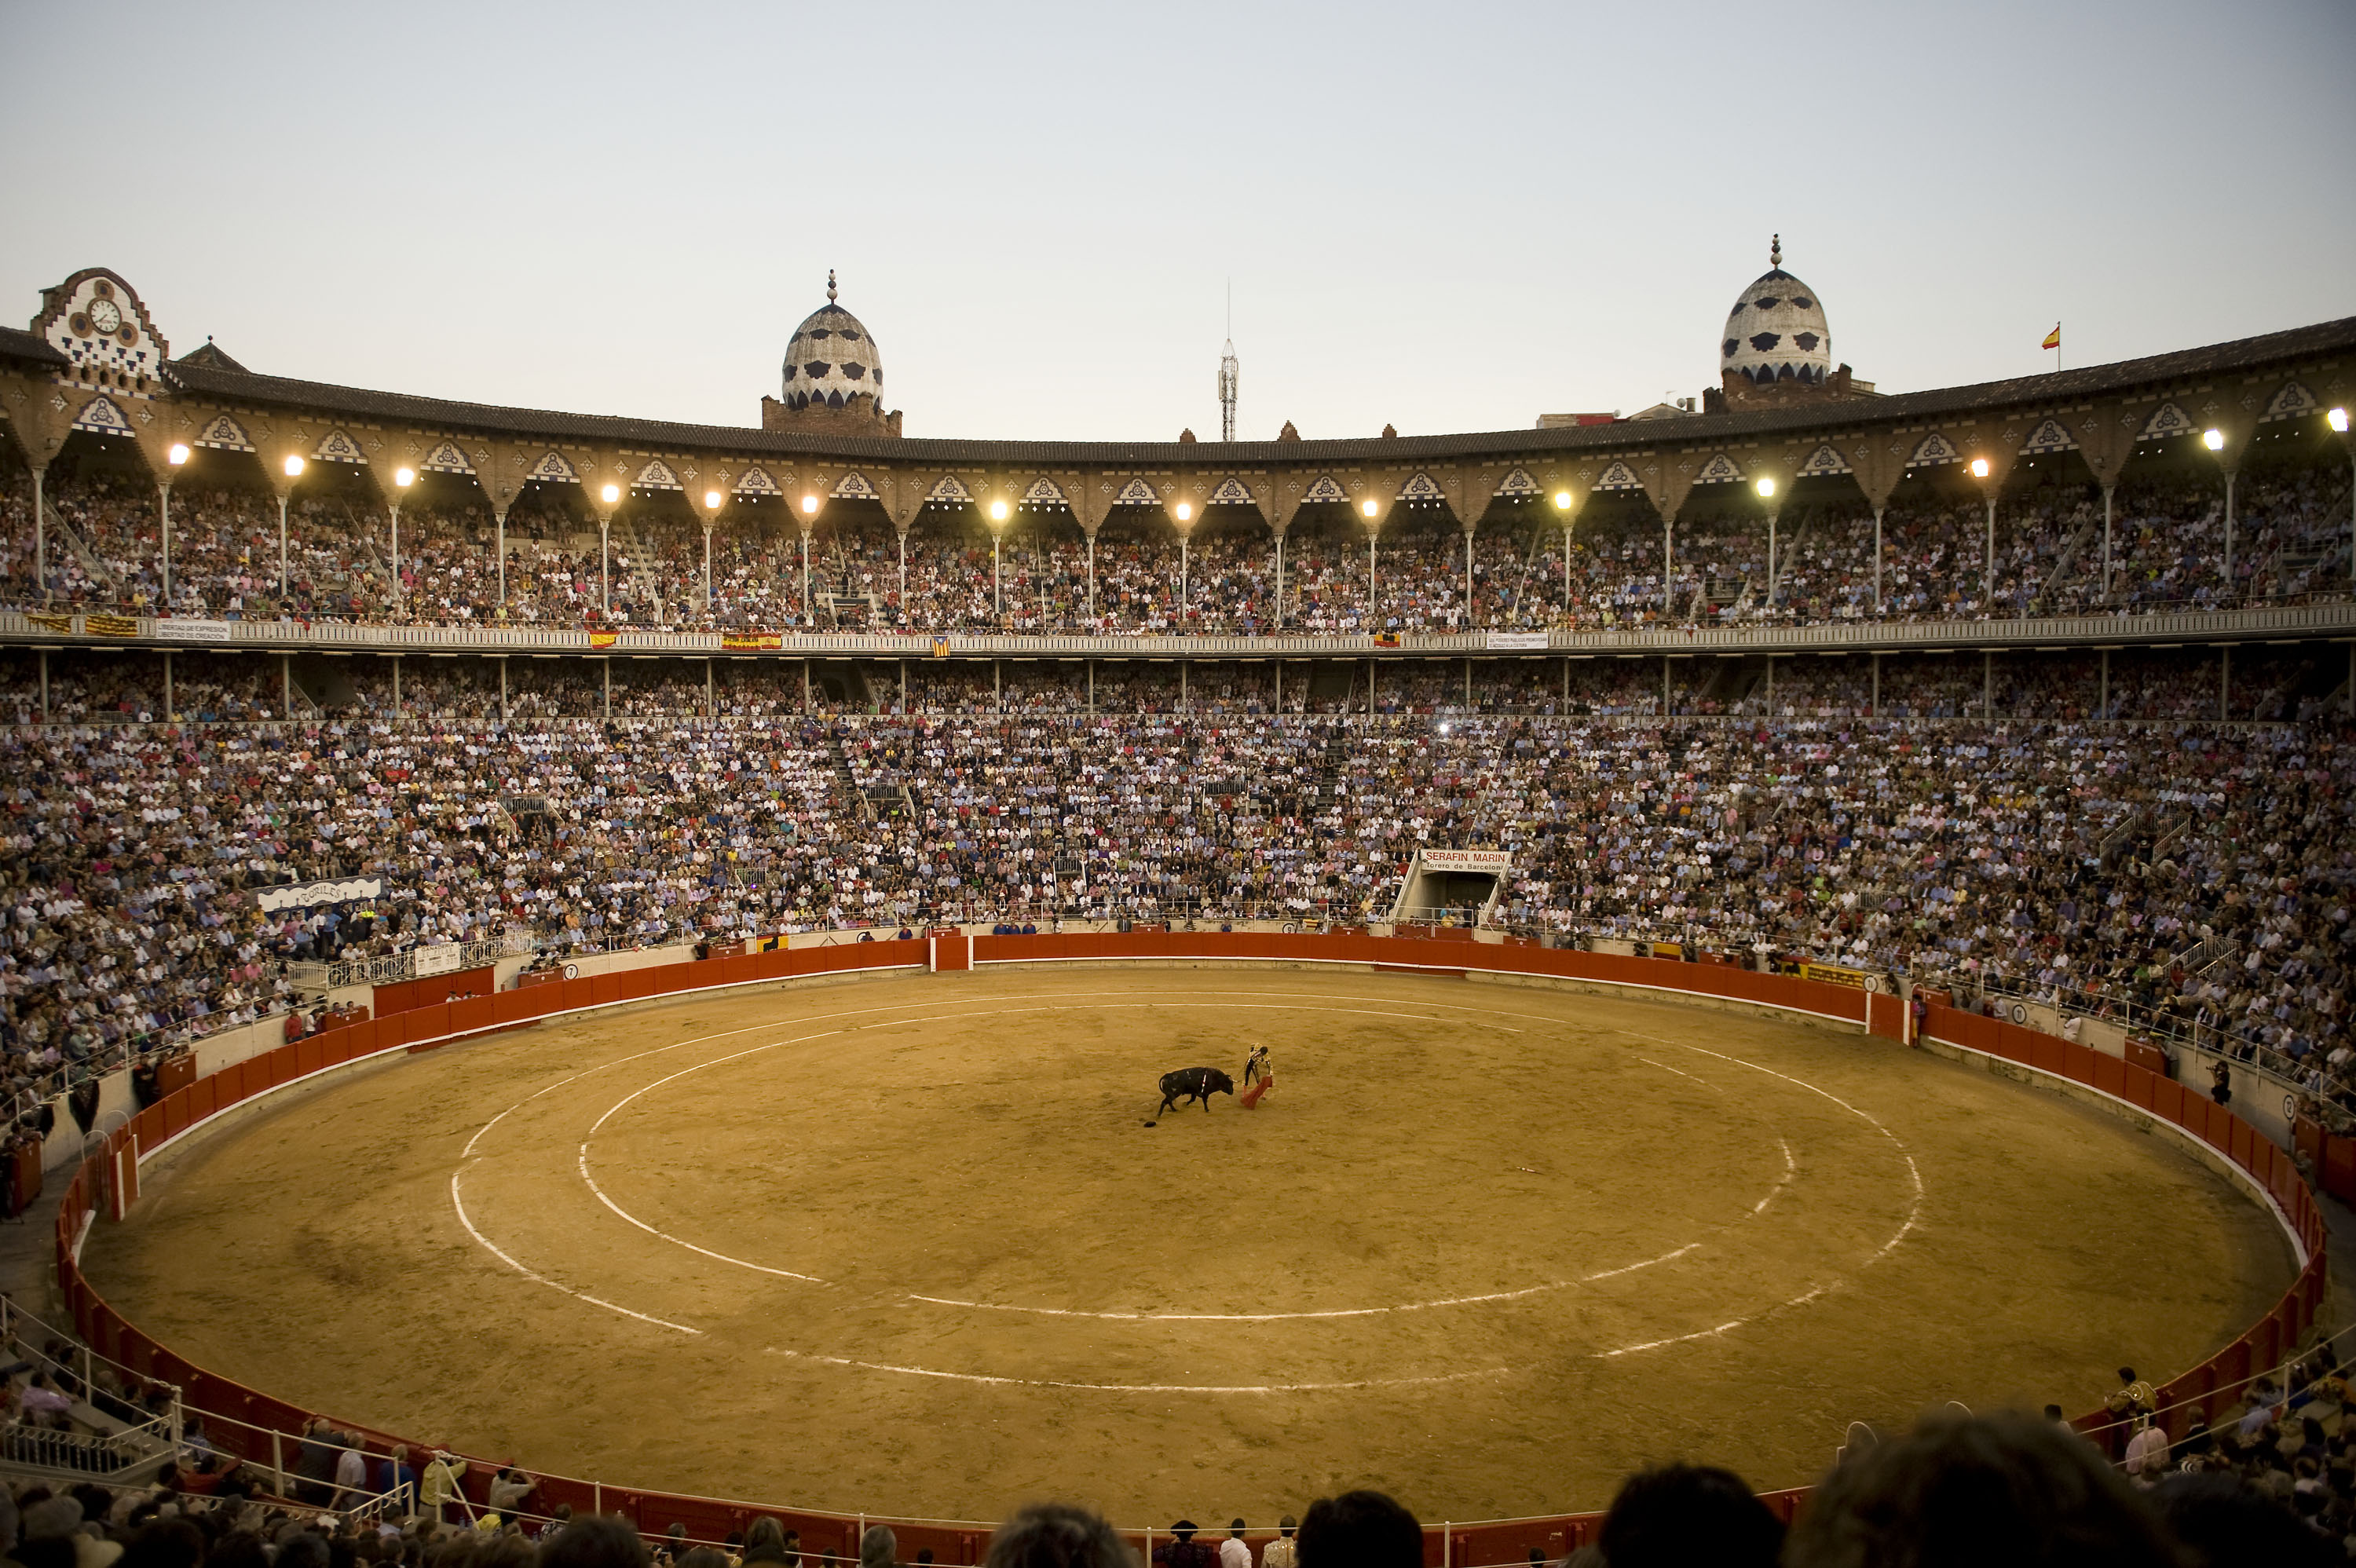 Bullfighter Jose Tomas performs during the last bullfight at the La Monumental on September 25, 2011 in Barcelona, Spain, following the vote by the Catalan regional Parliament to ban bullfighting.